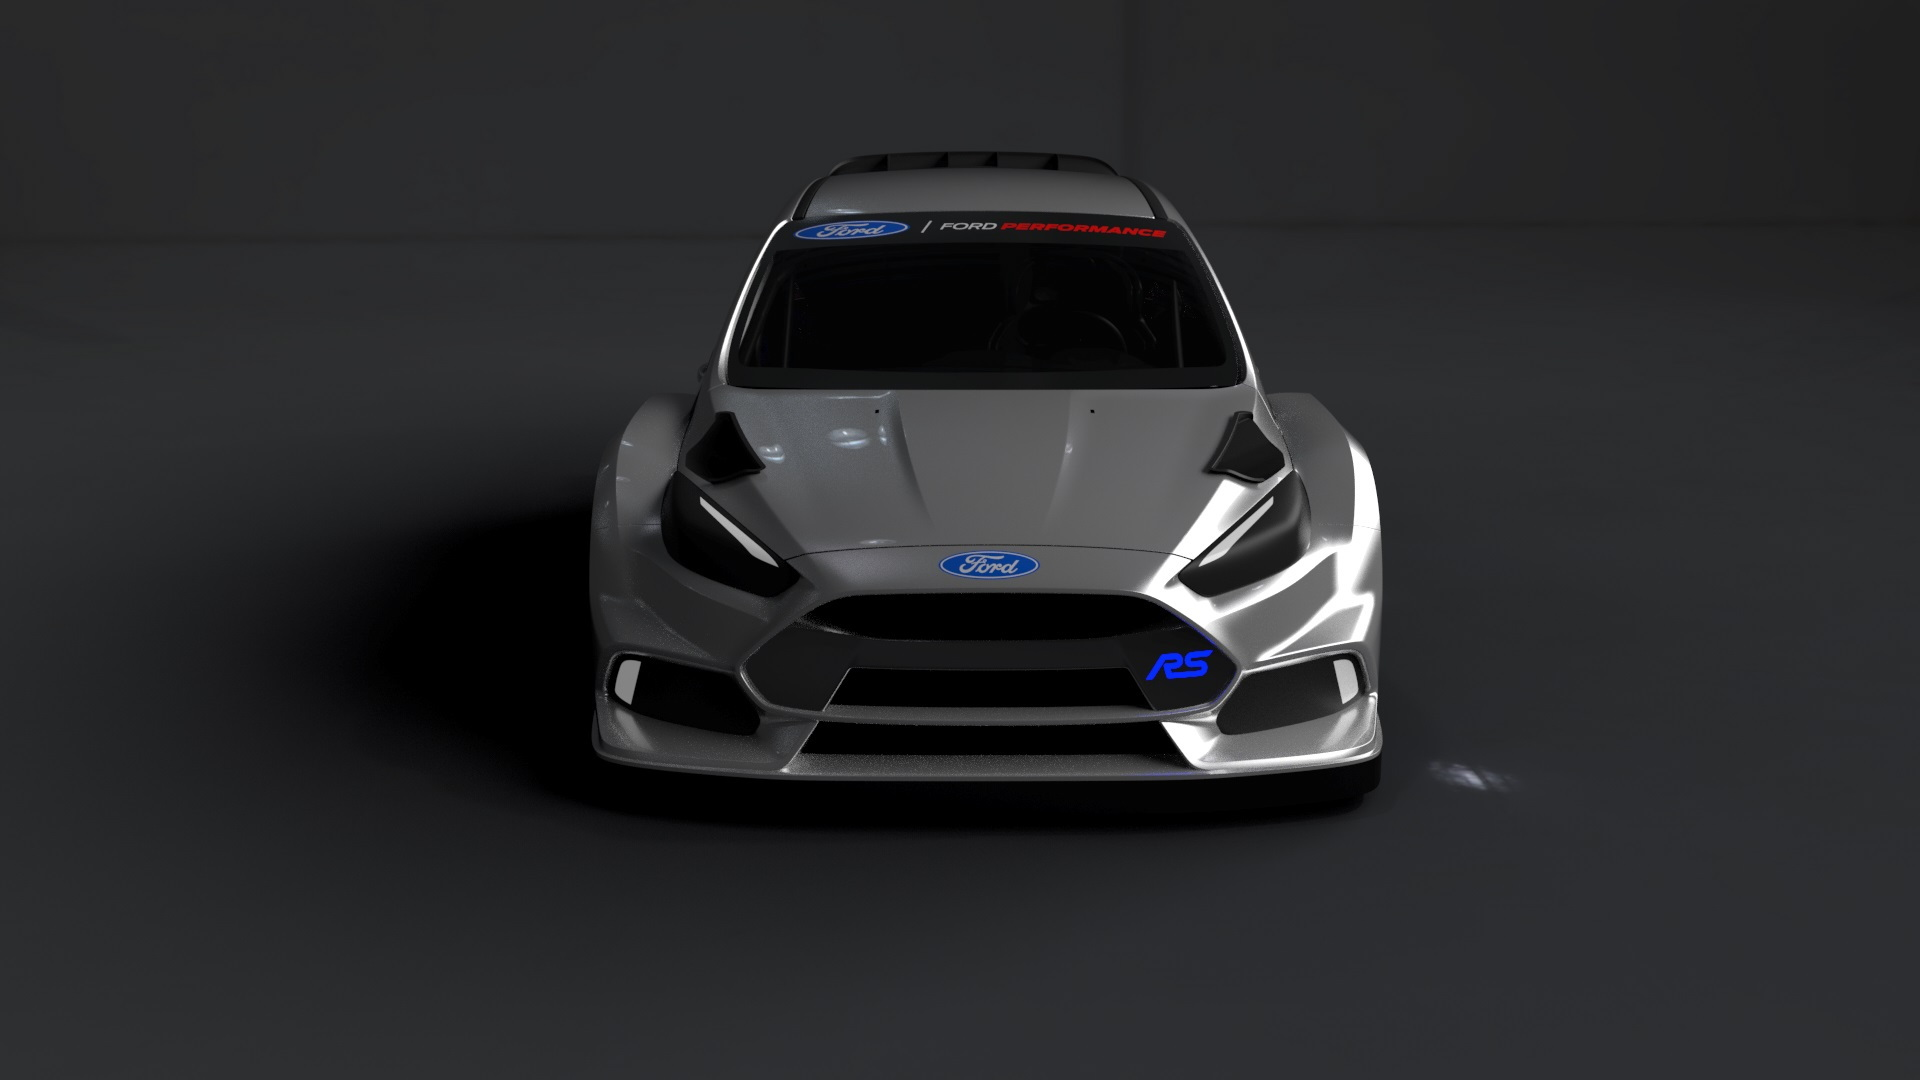 2016 Ford Focus RS World Rallycross Championship car